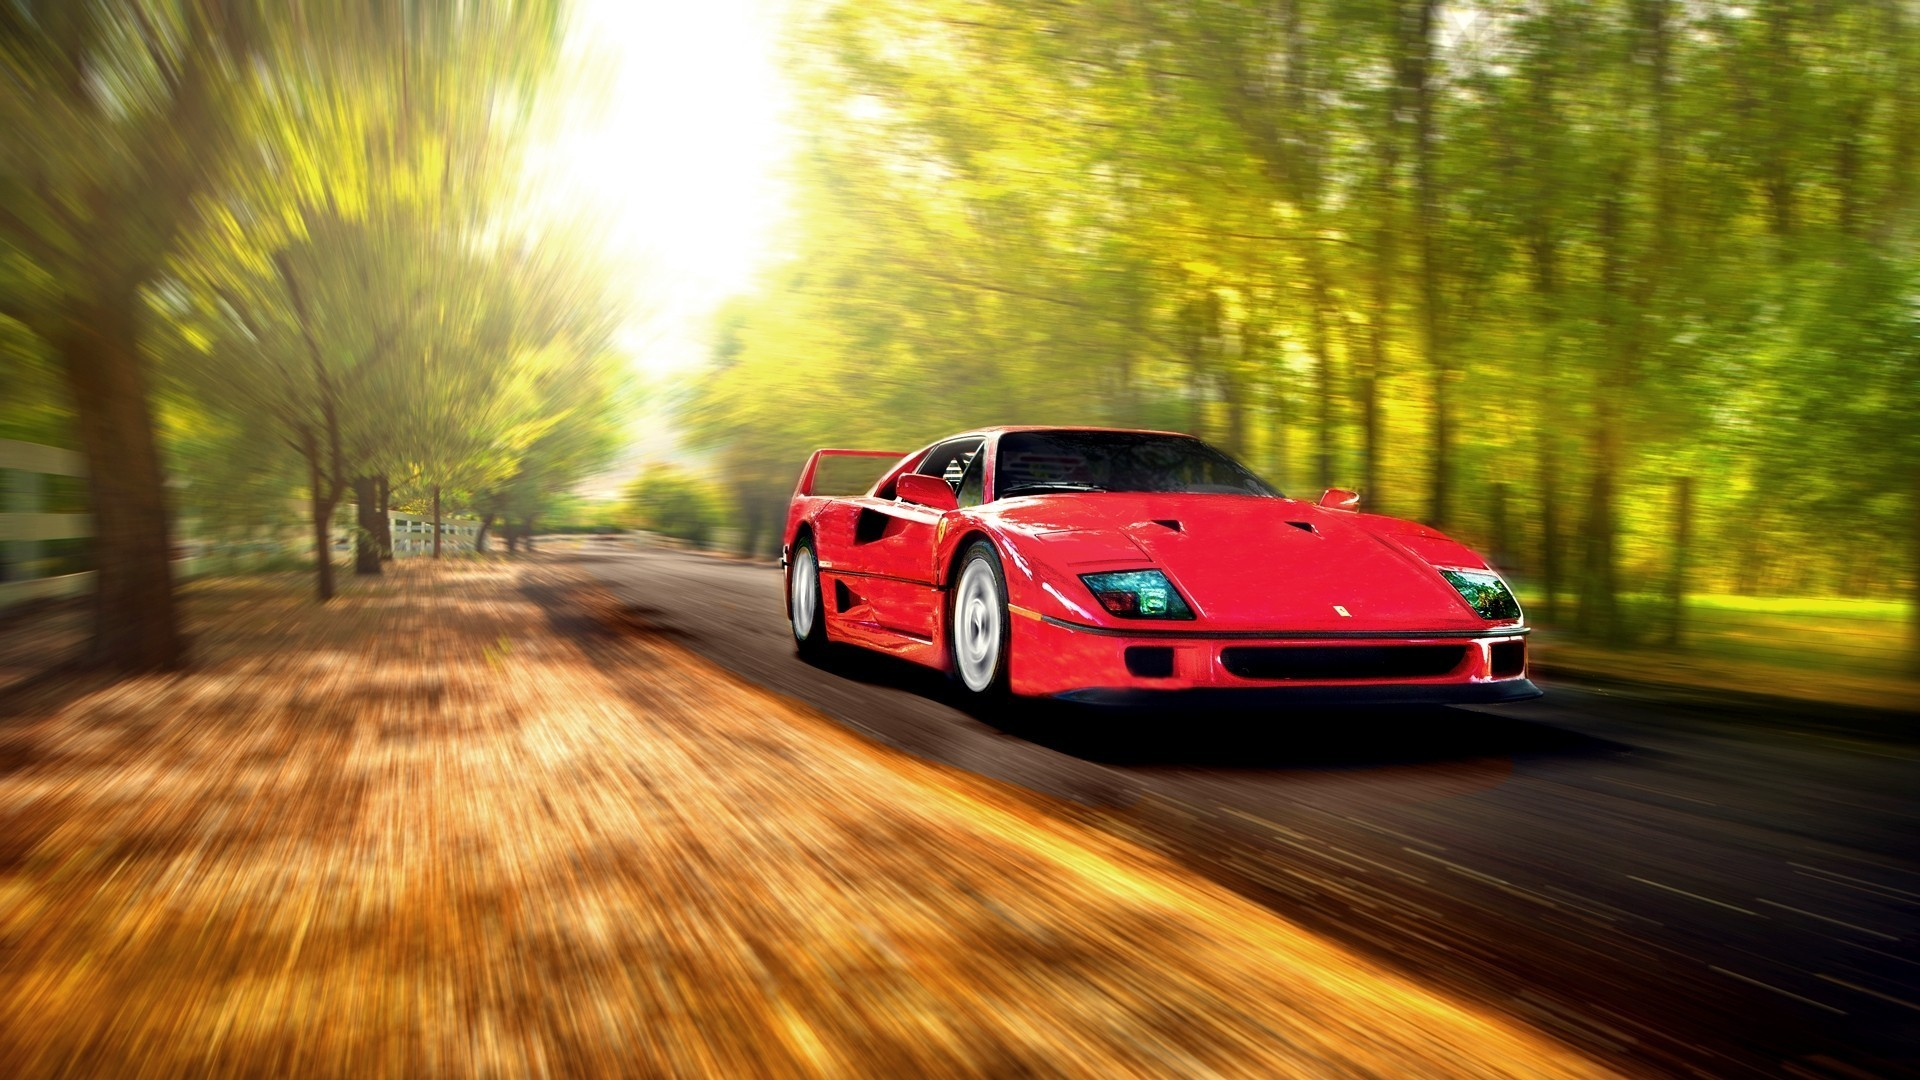 f40 wallpapers 71 background